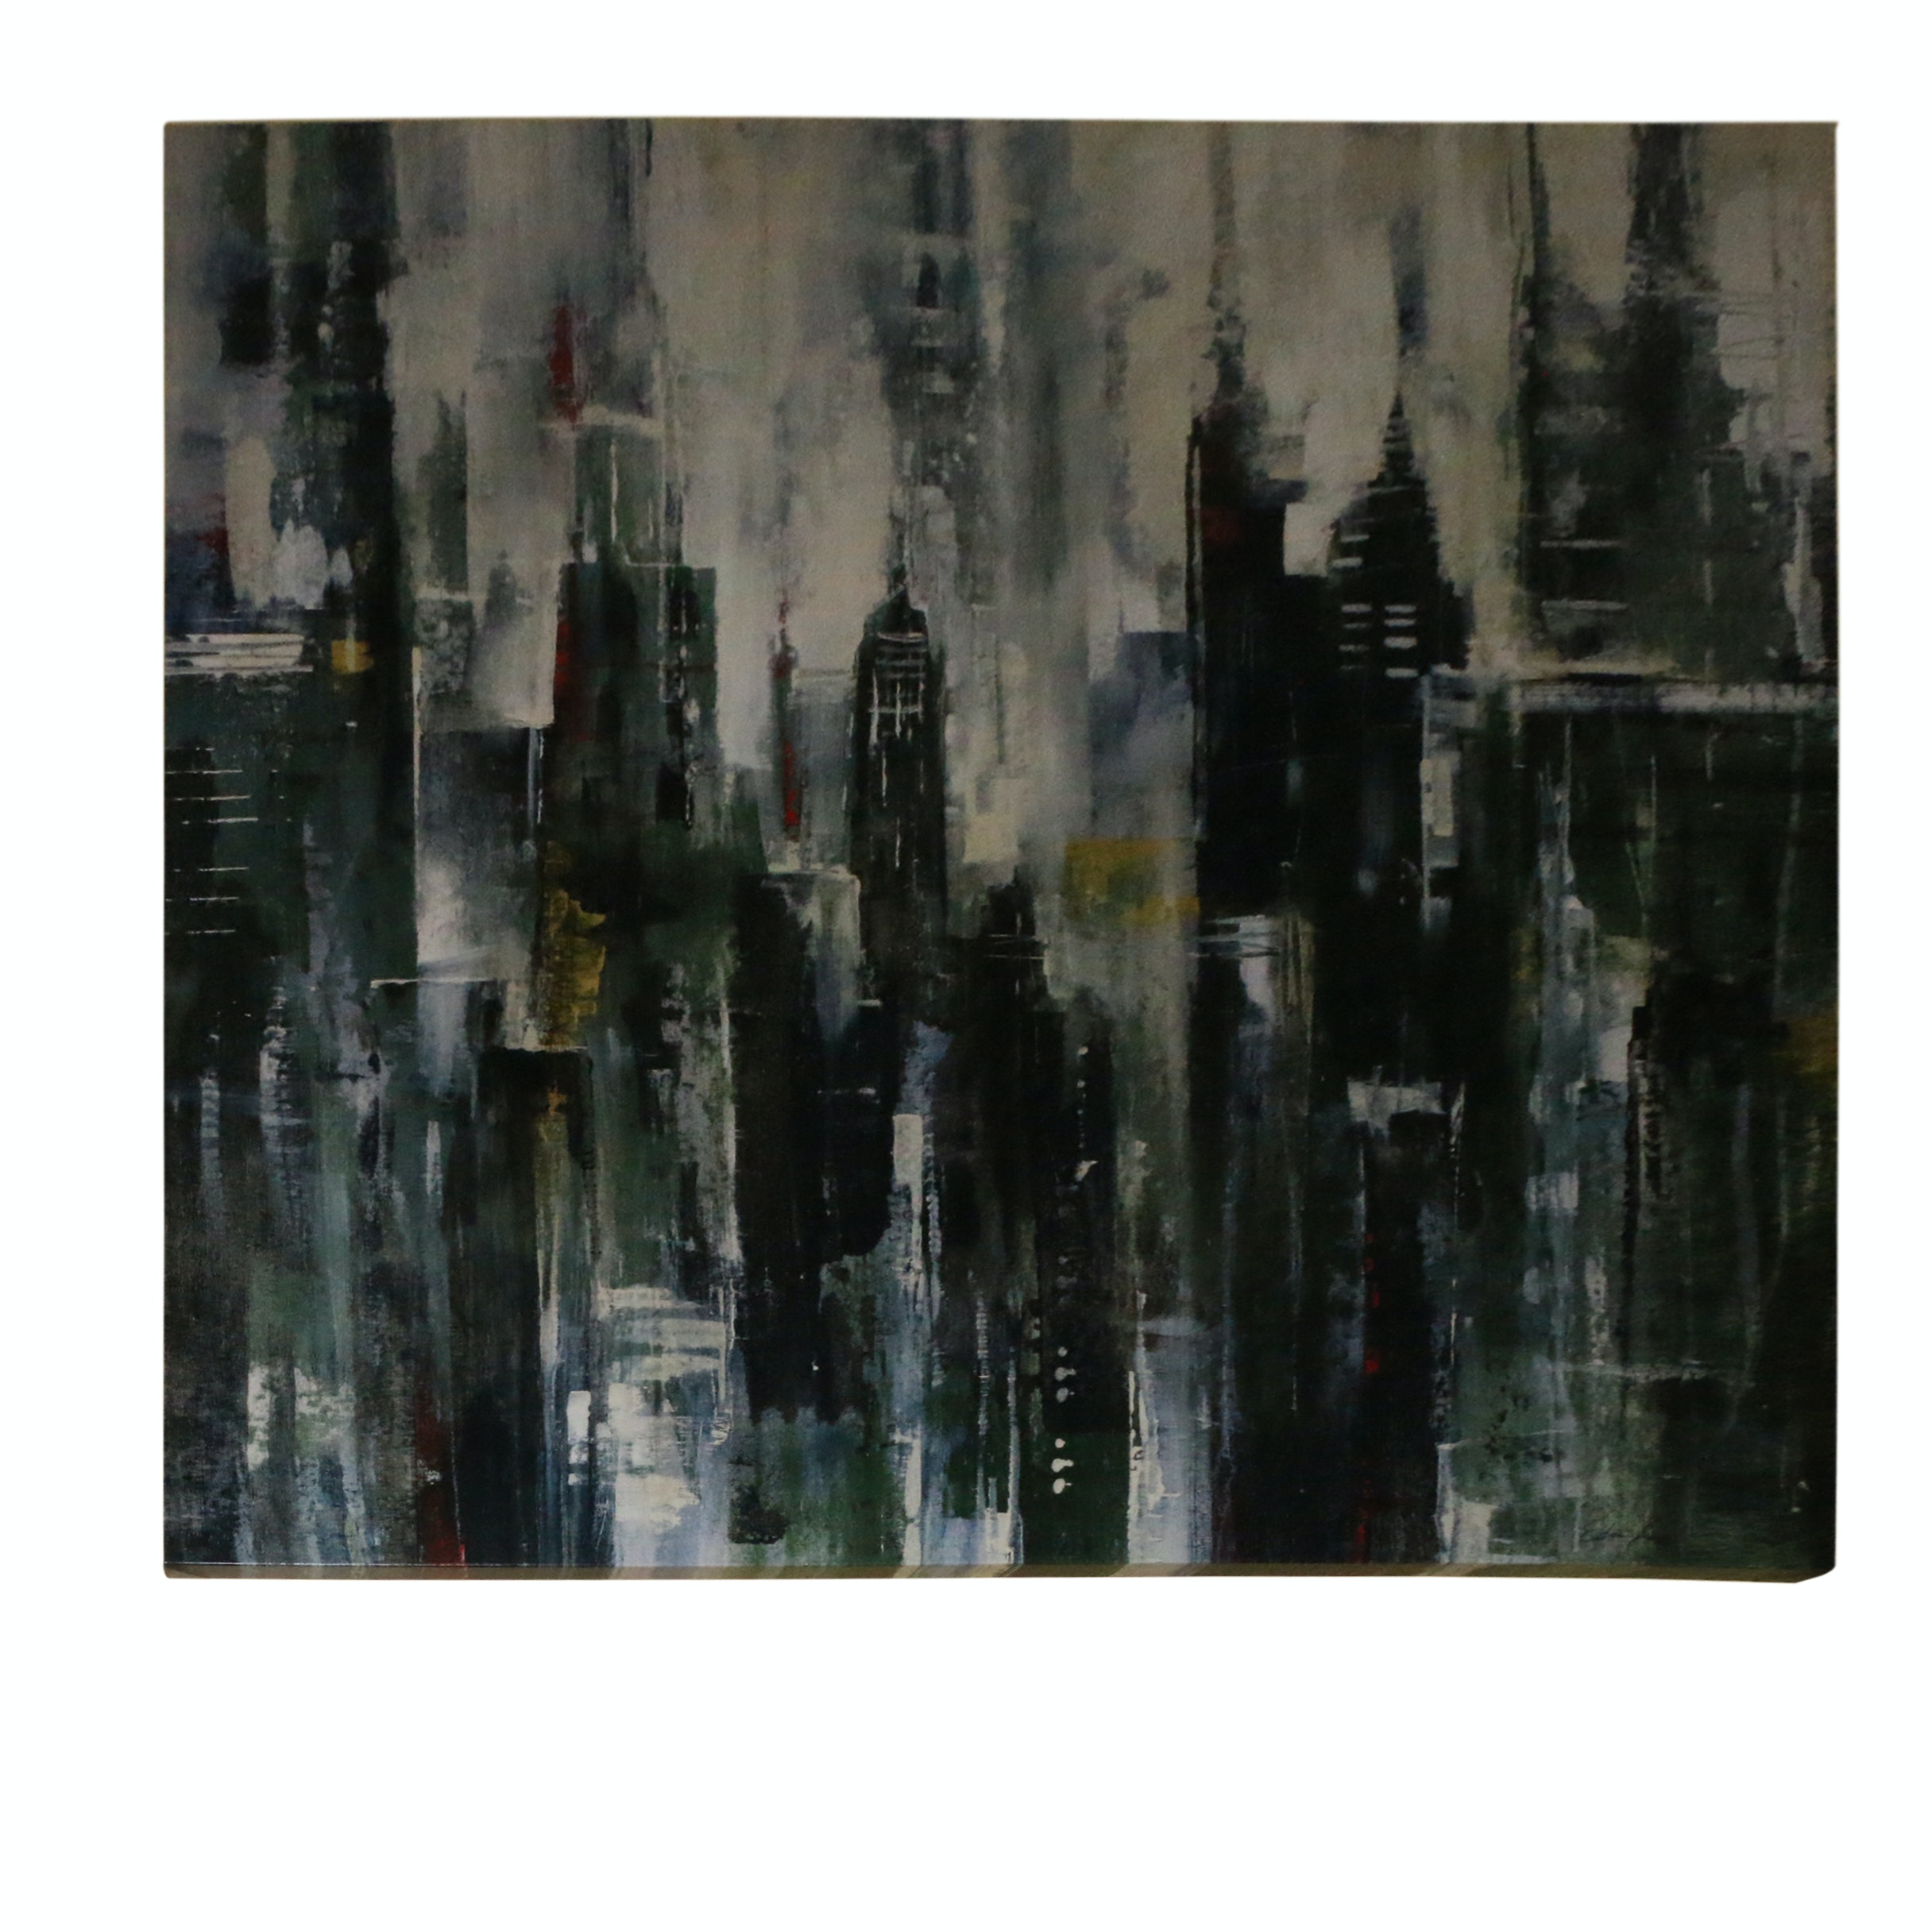 Acrylic Painting on Canvas Board of Abstract Cityscape